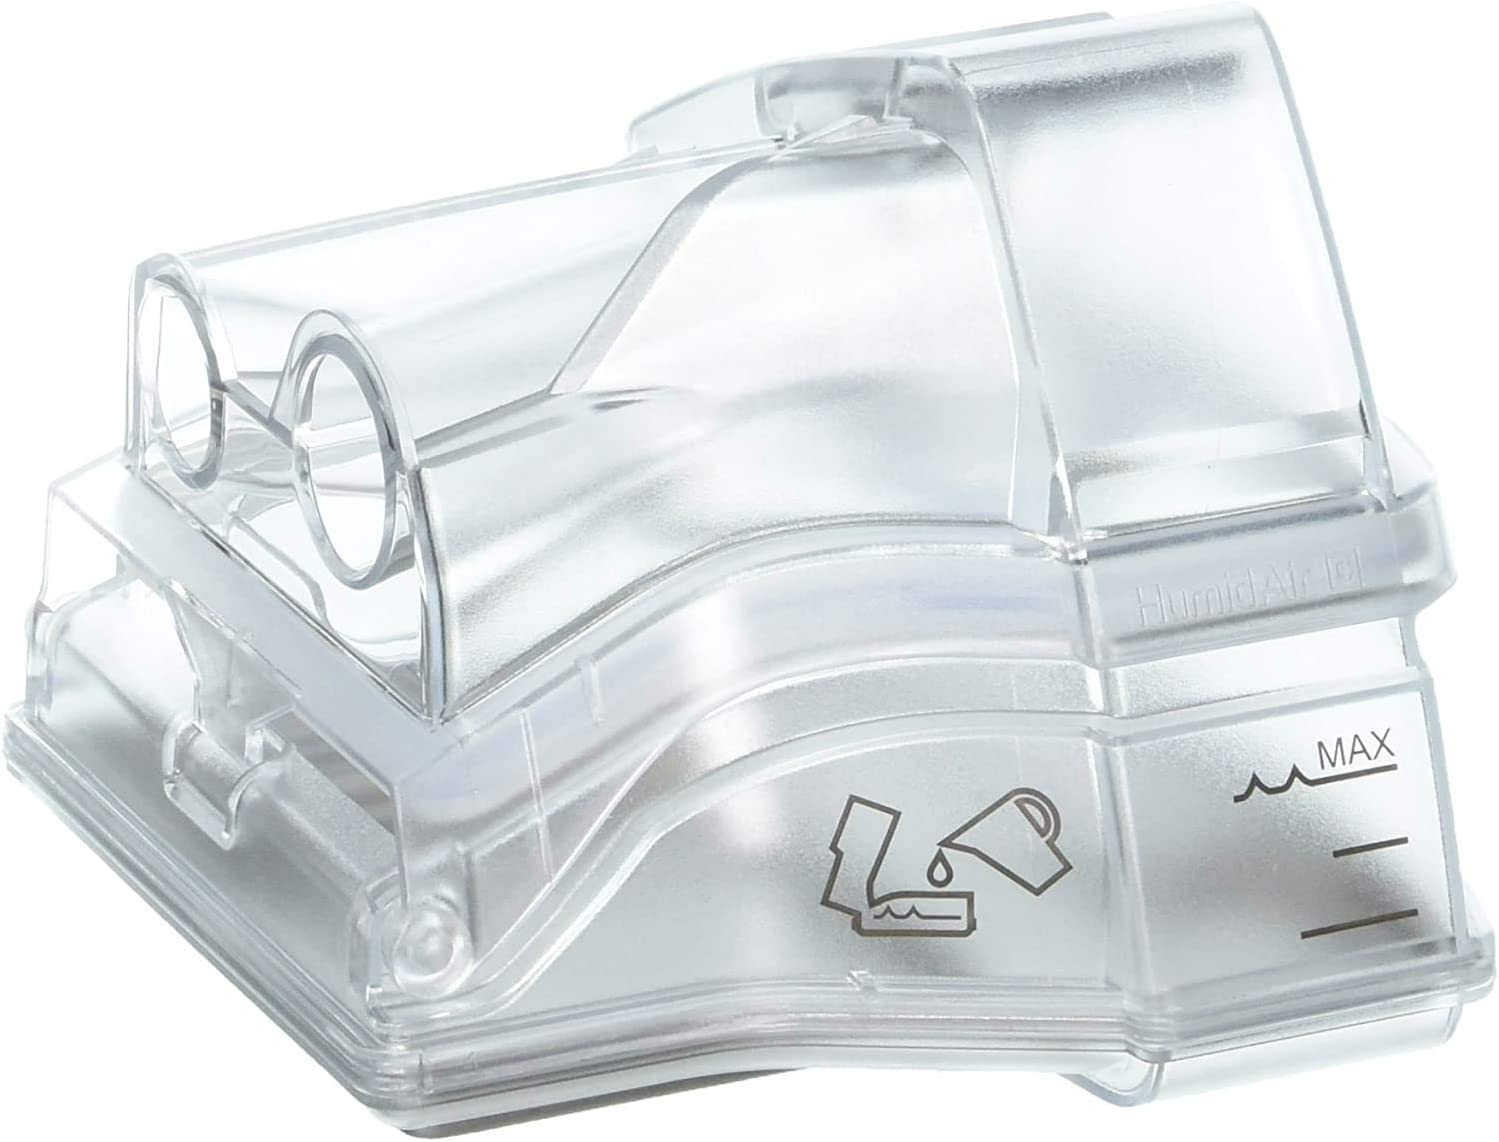 Res-Med Standard Replacement Water Chamber for AirSense 10 & AirCurve 10